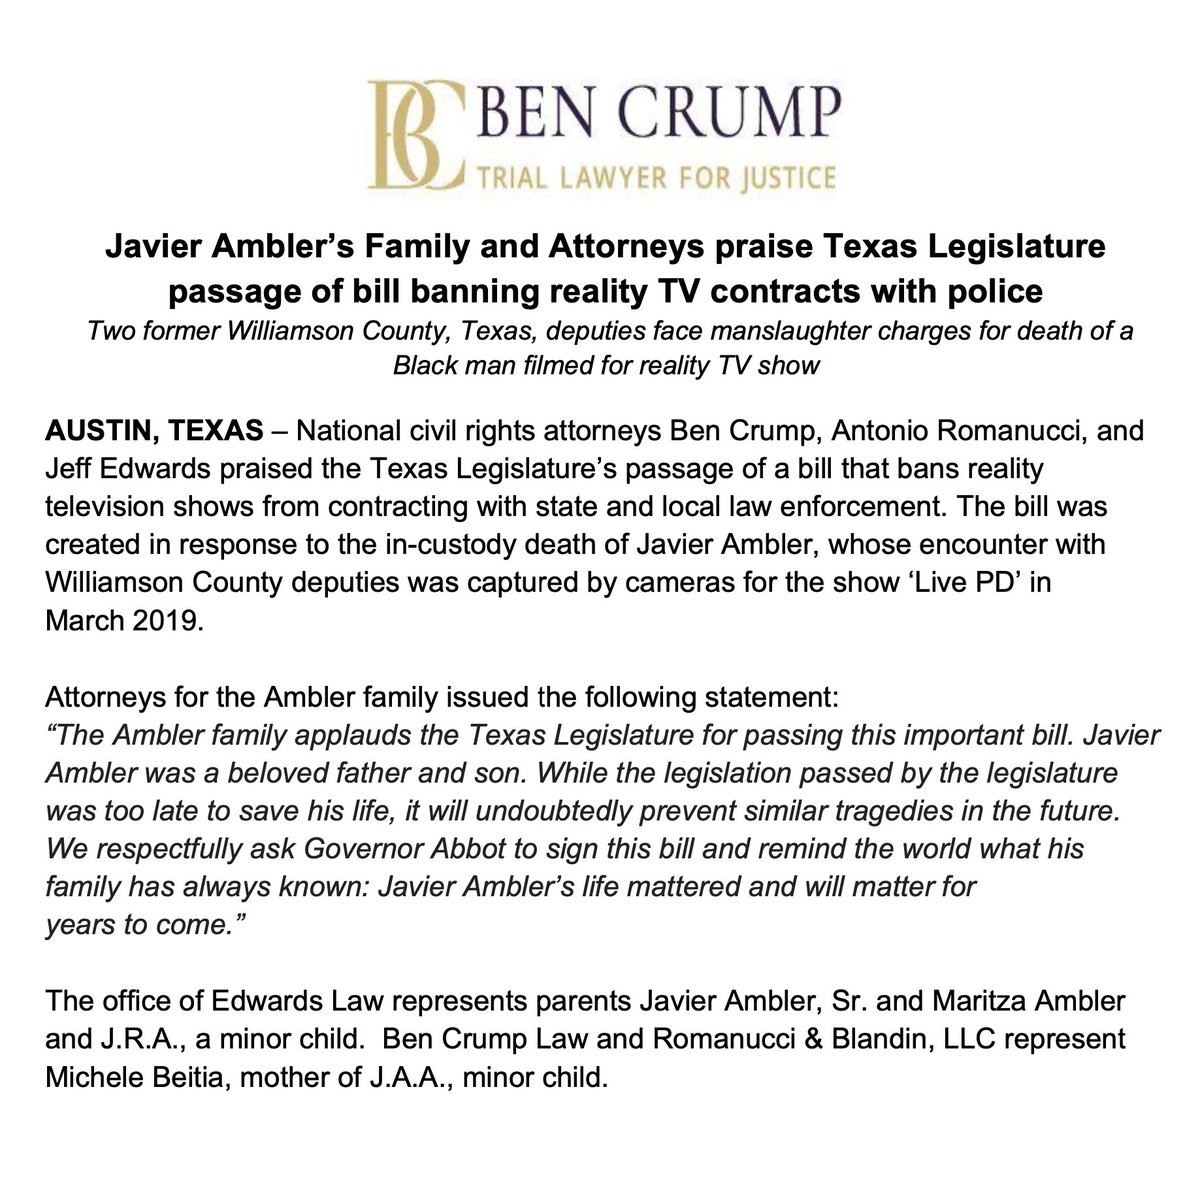 NEWS ALERT: Javier Ambler's family, @AttorneyCrump, & co-counsels praise Texas legislature passage of bill banning reality TV contracts with police.